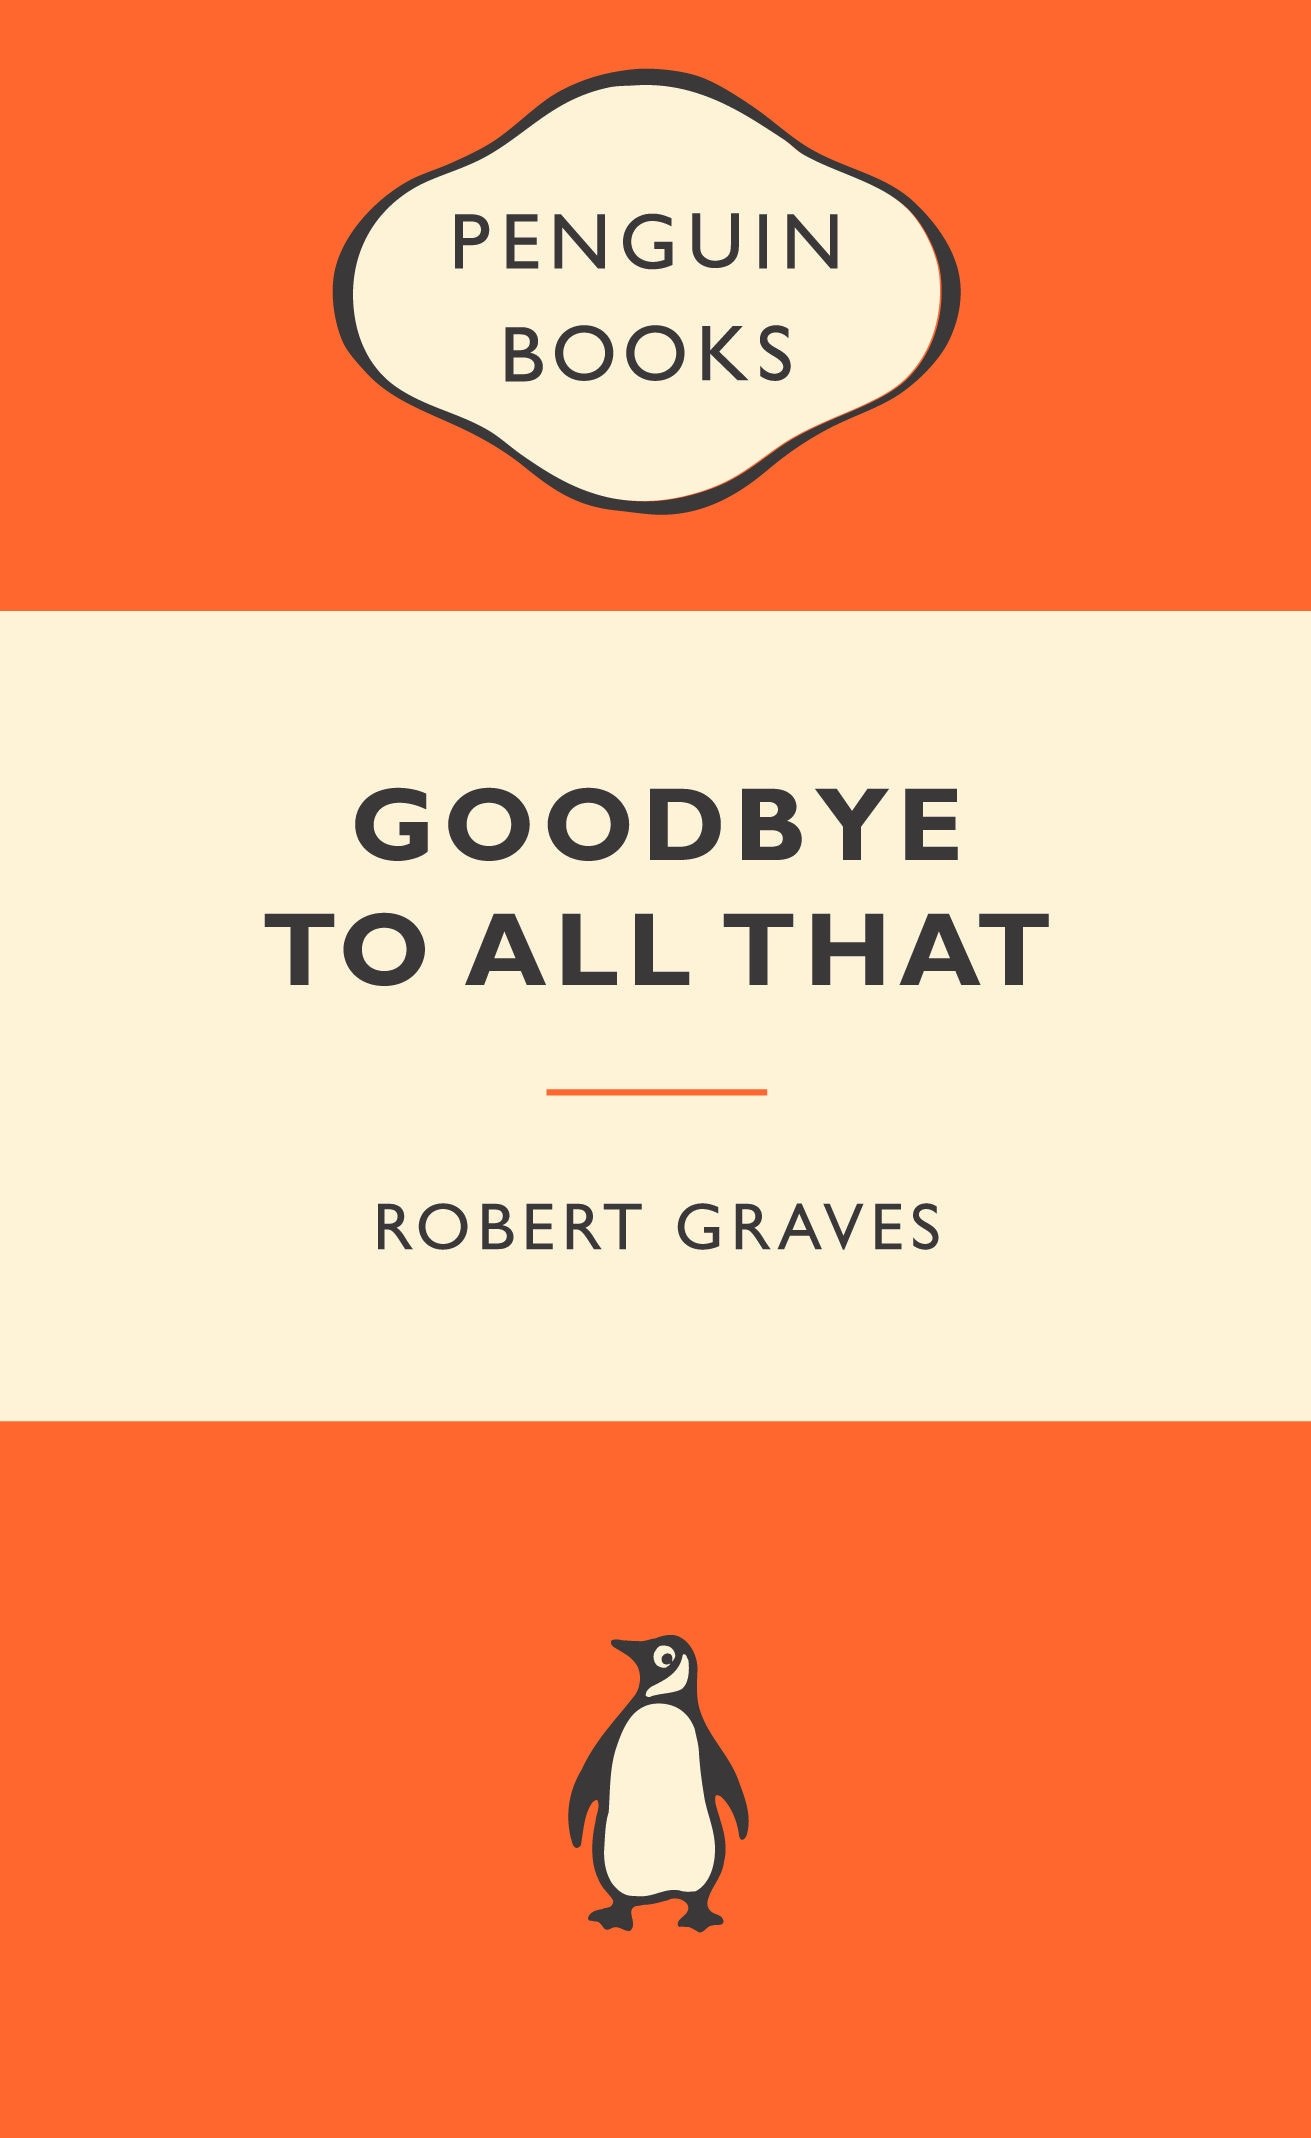 Penguin Book Cover Iphone Case : Goodbye to all that popular penguins penguin books